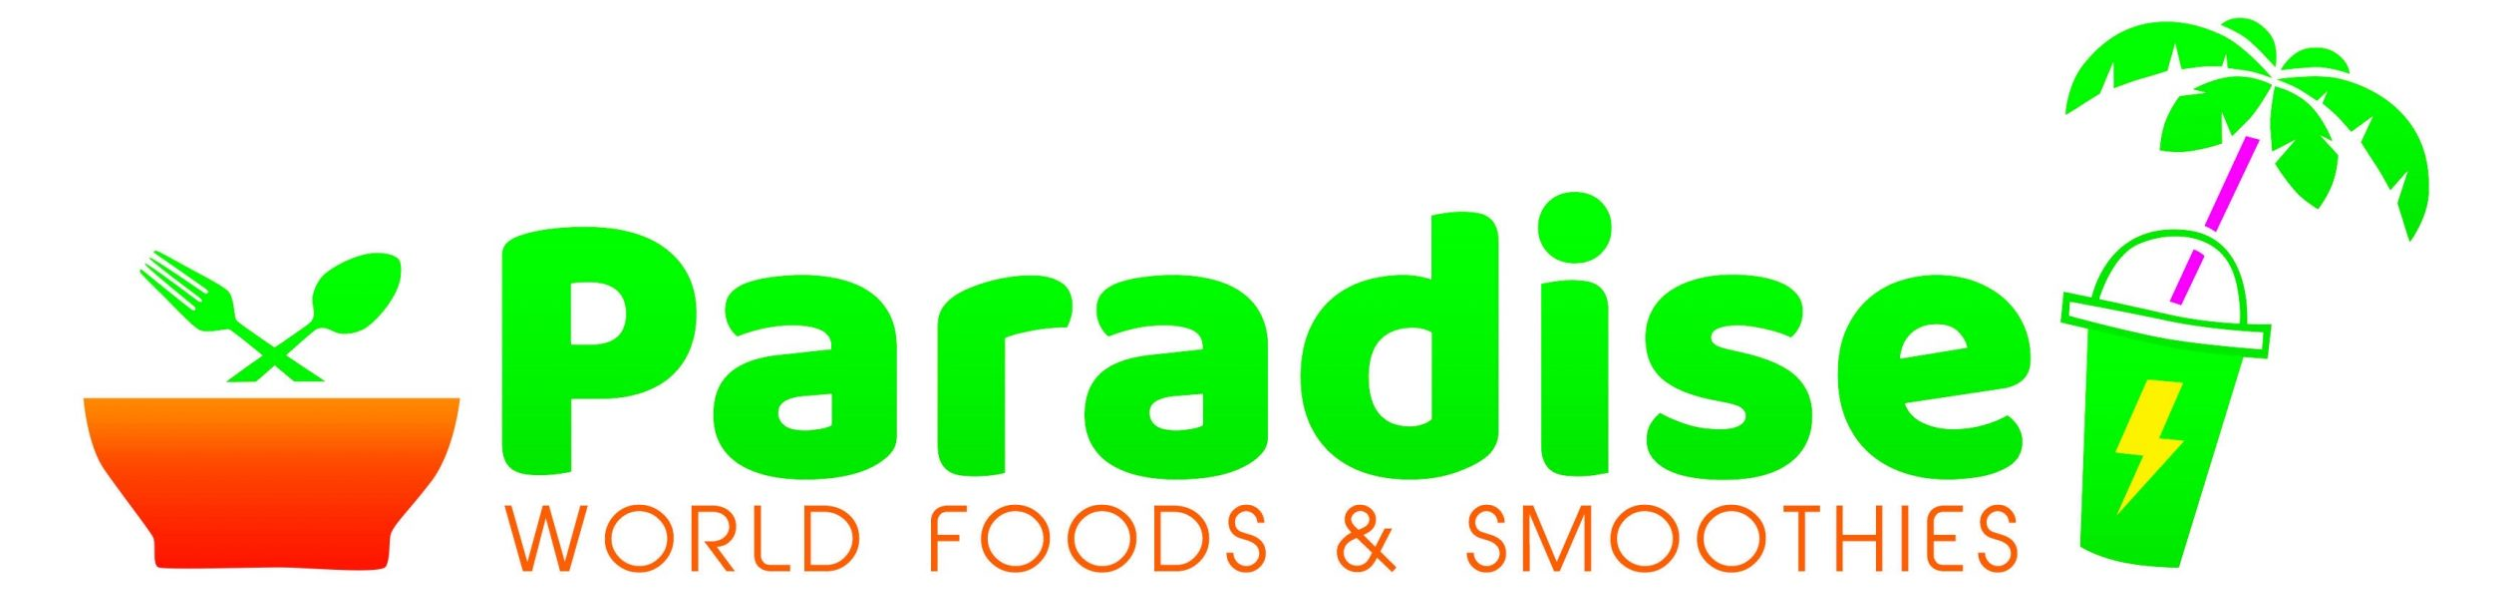 Paradise World Foods & Smoothies